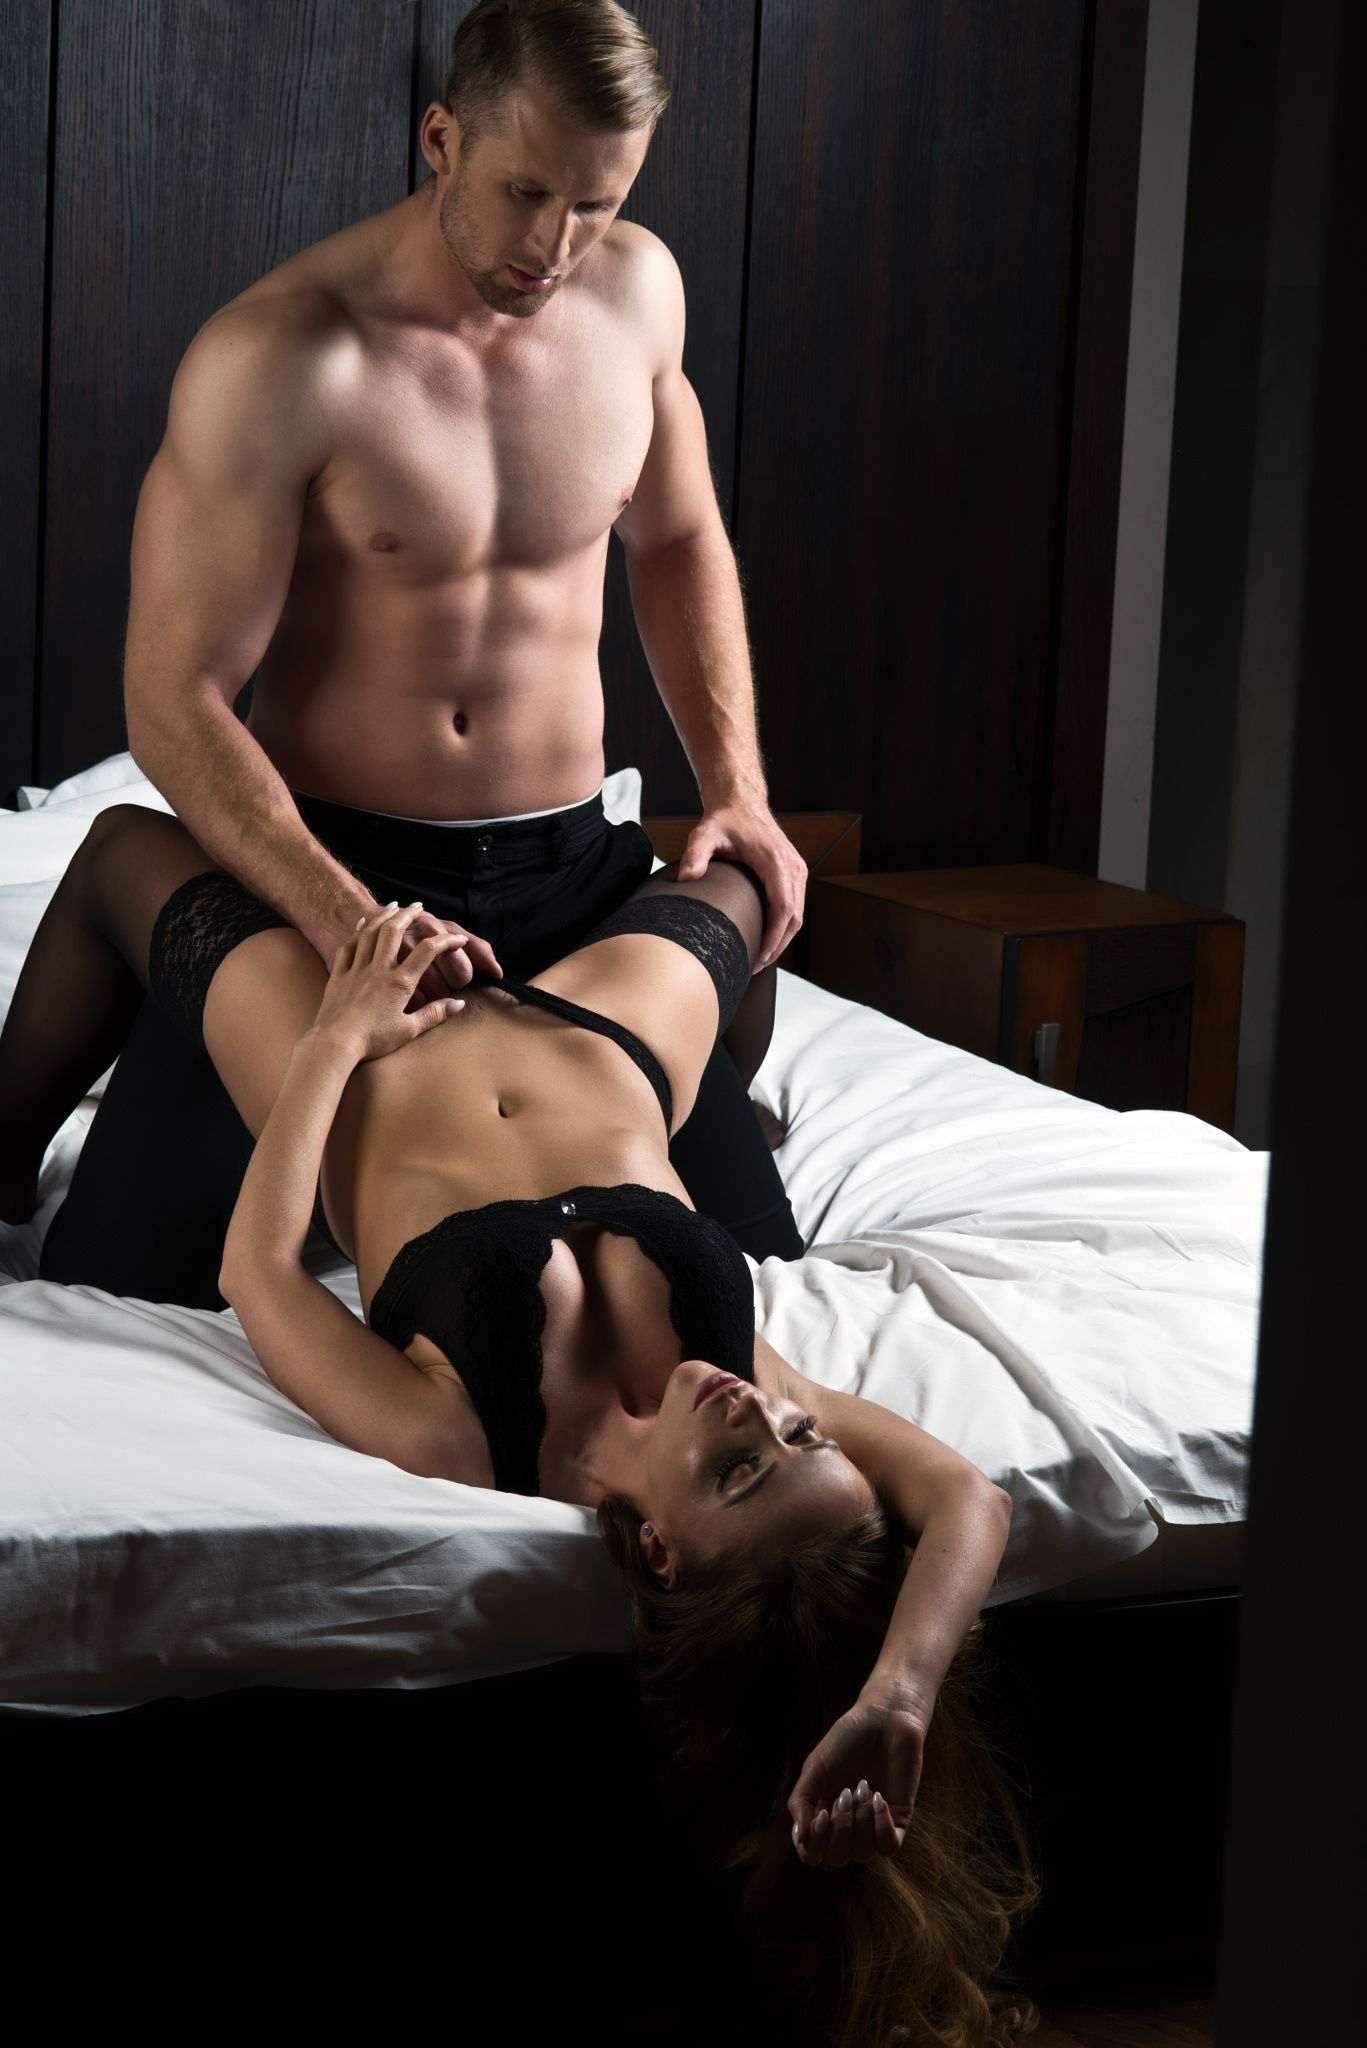 sexy-bedroom-roleplay-ideas-for-couples-emanuela-fucking